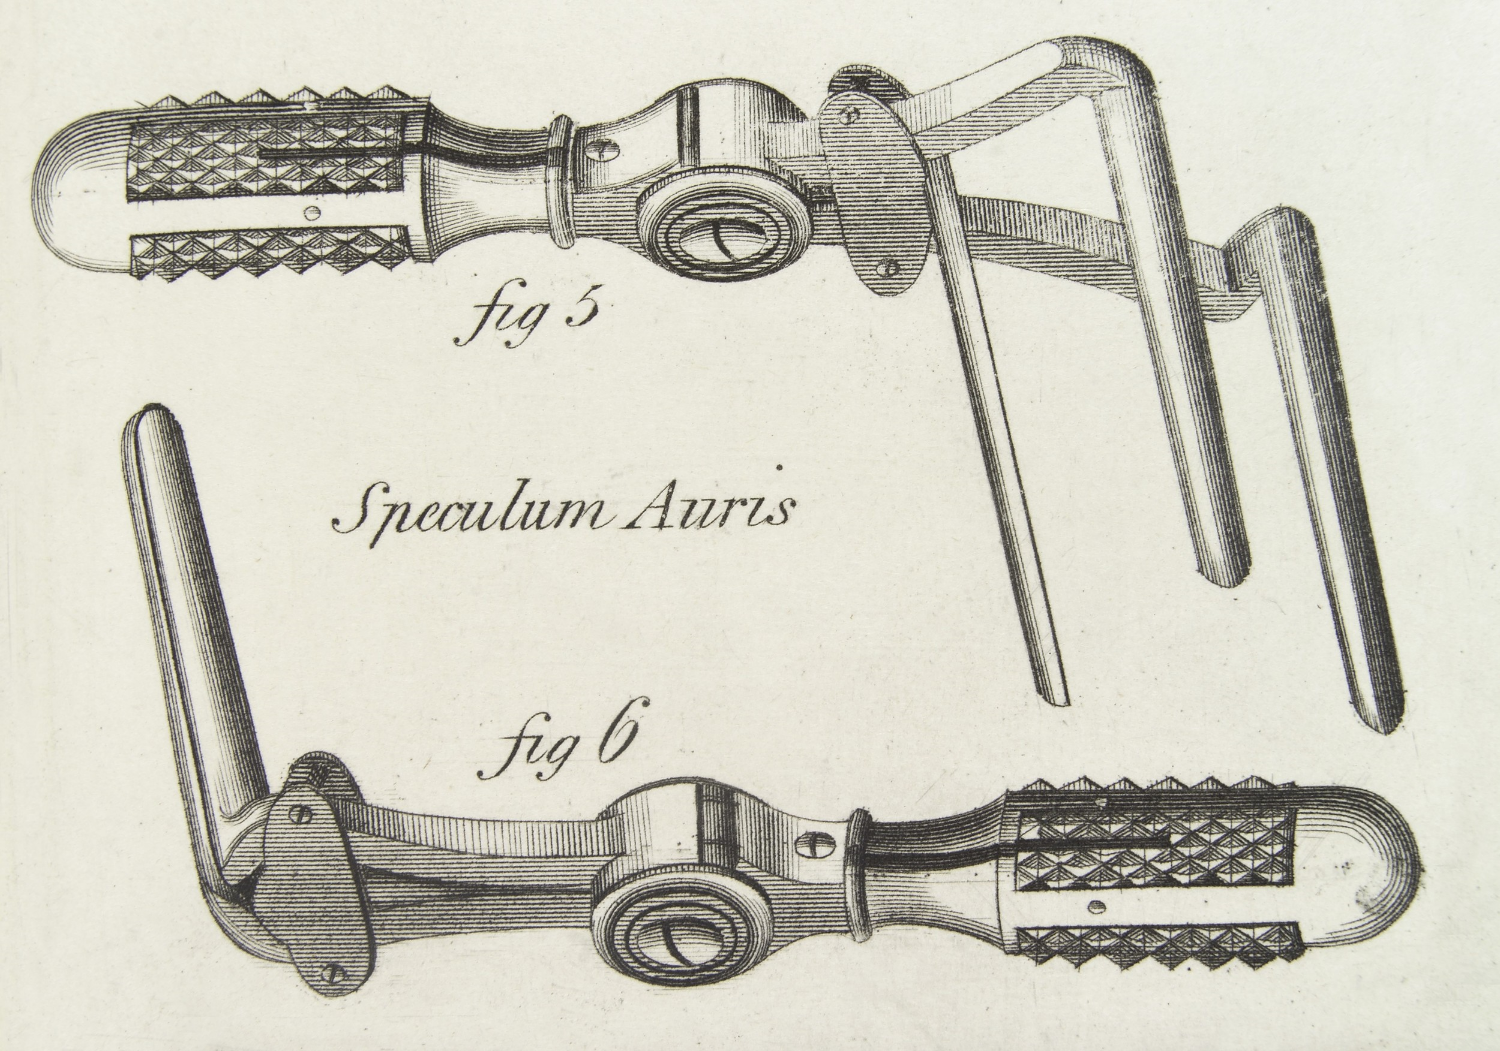 Speculum auris, made by John Weiss, 1831. Credit: Wellcome Library, London. Wellcome Images.